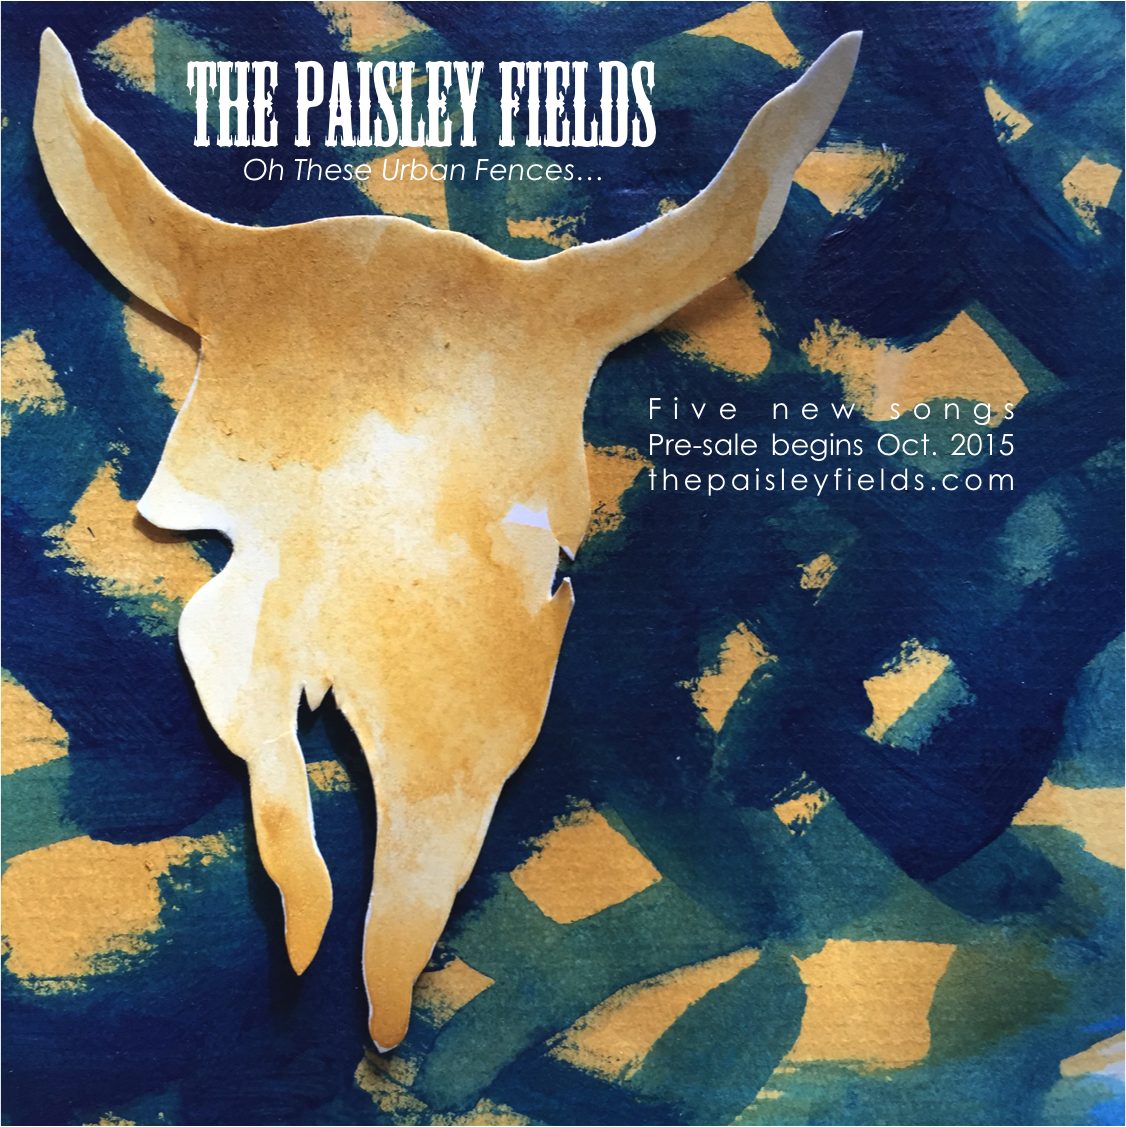 Pre-sale starts October 2nd. Visit thepaisleyfields.com/store